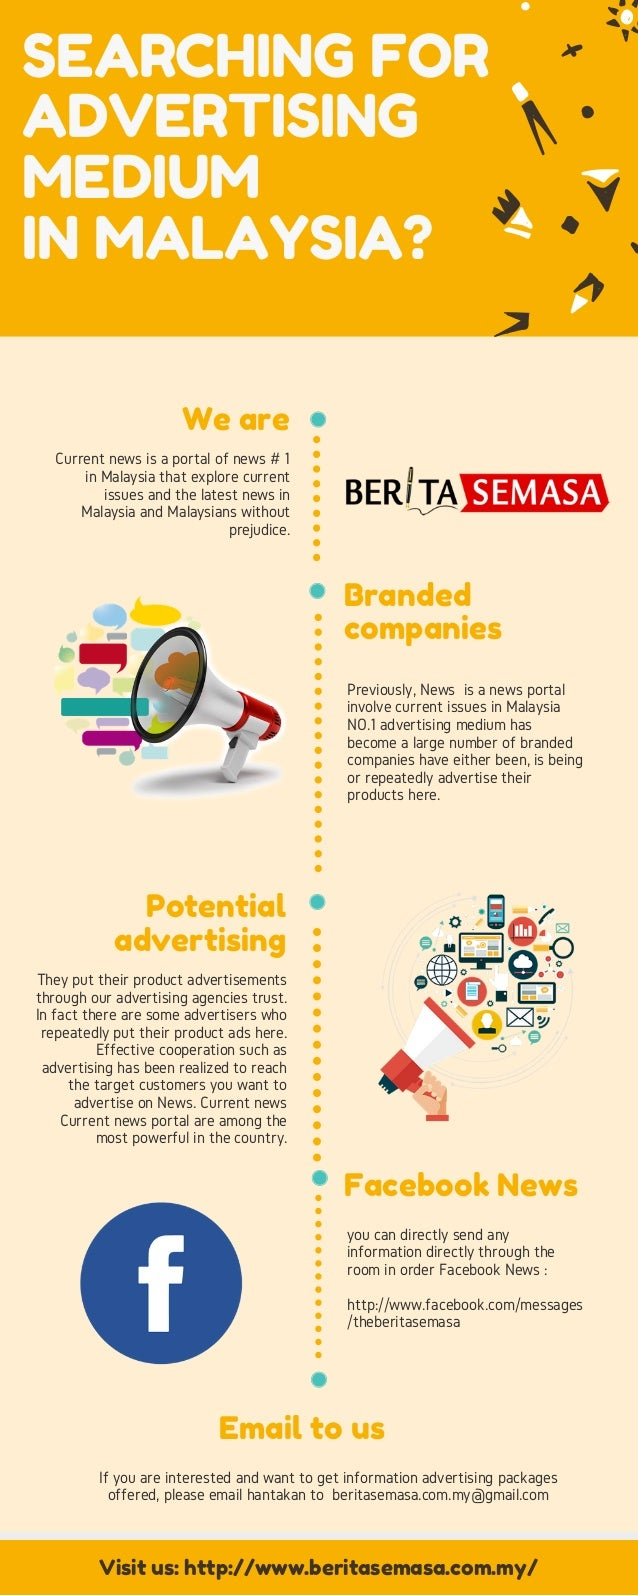 SEARCHING FOR ADVERTISING MEDIUM IN MALAYSIA? We are Branded companies Potential advertising Email to us Visit us: http://...